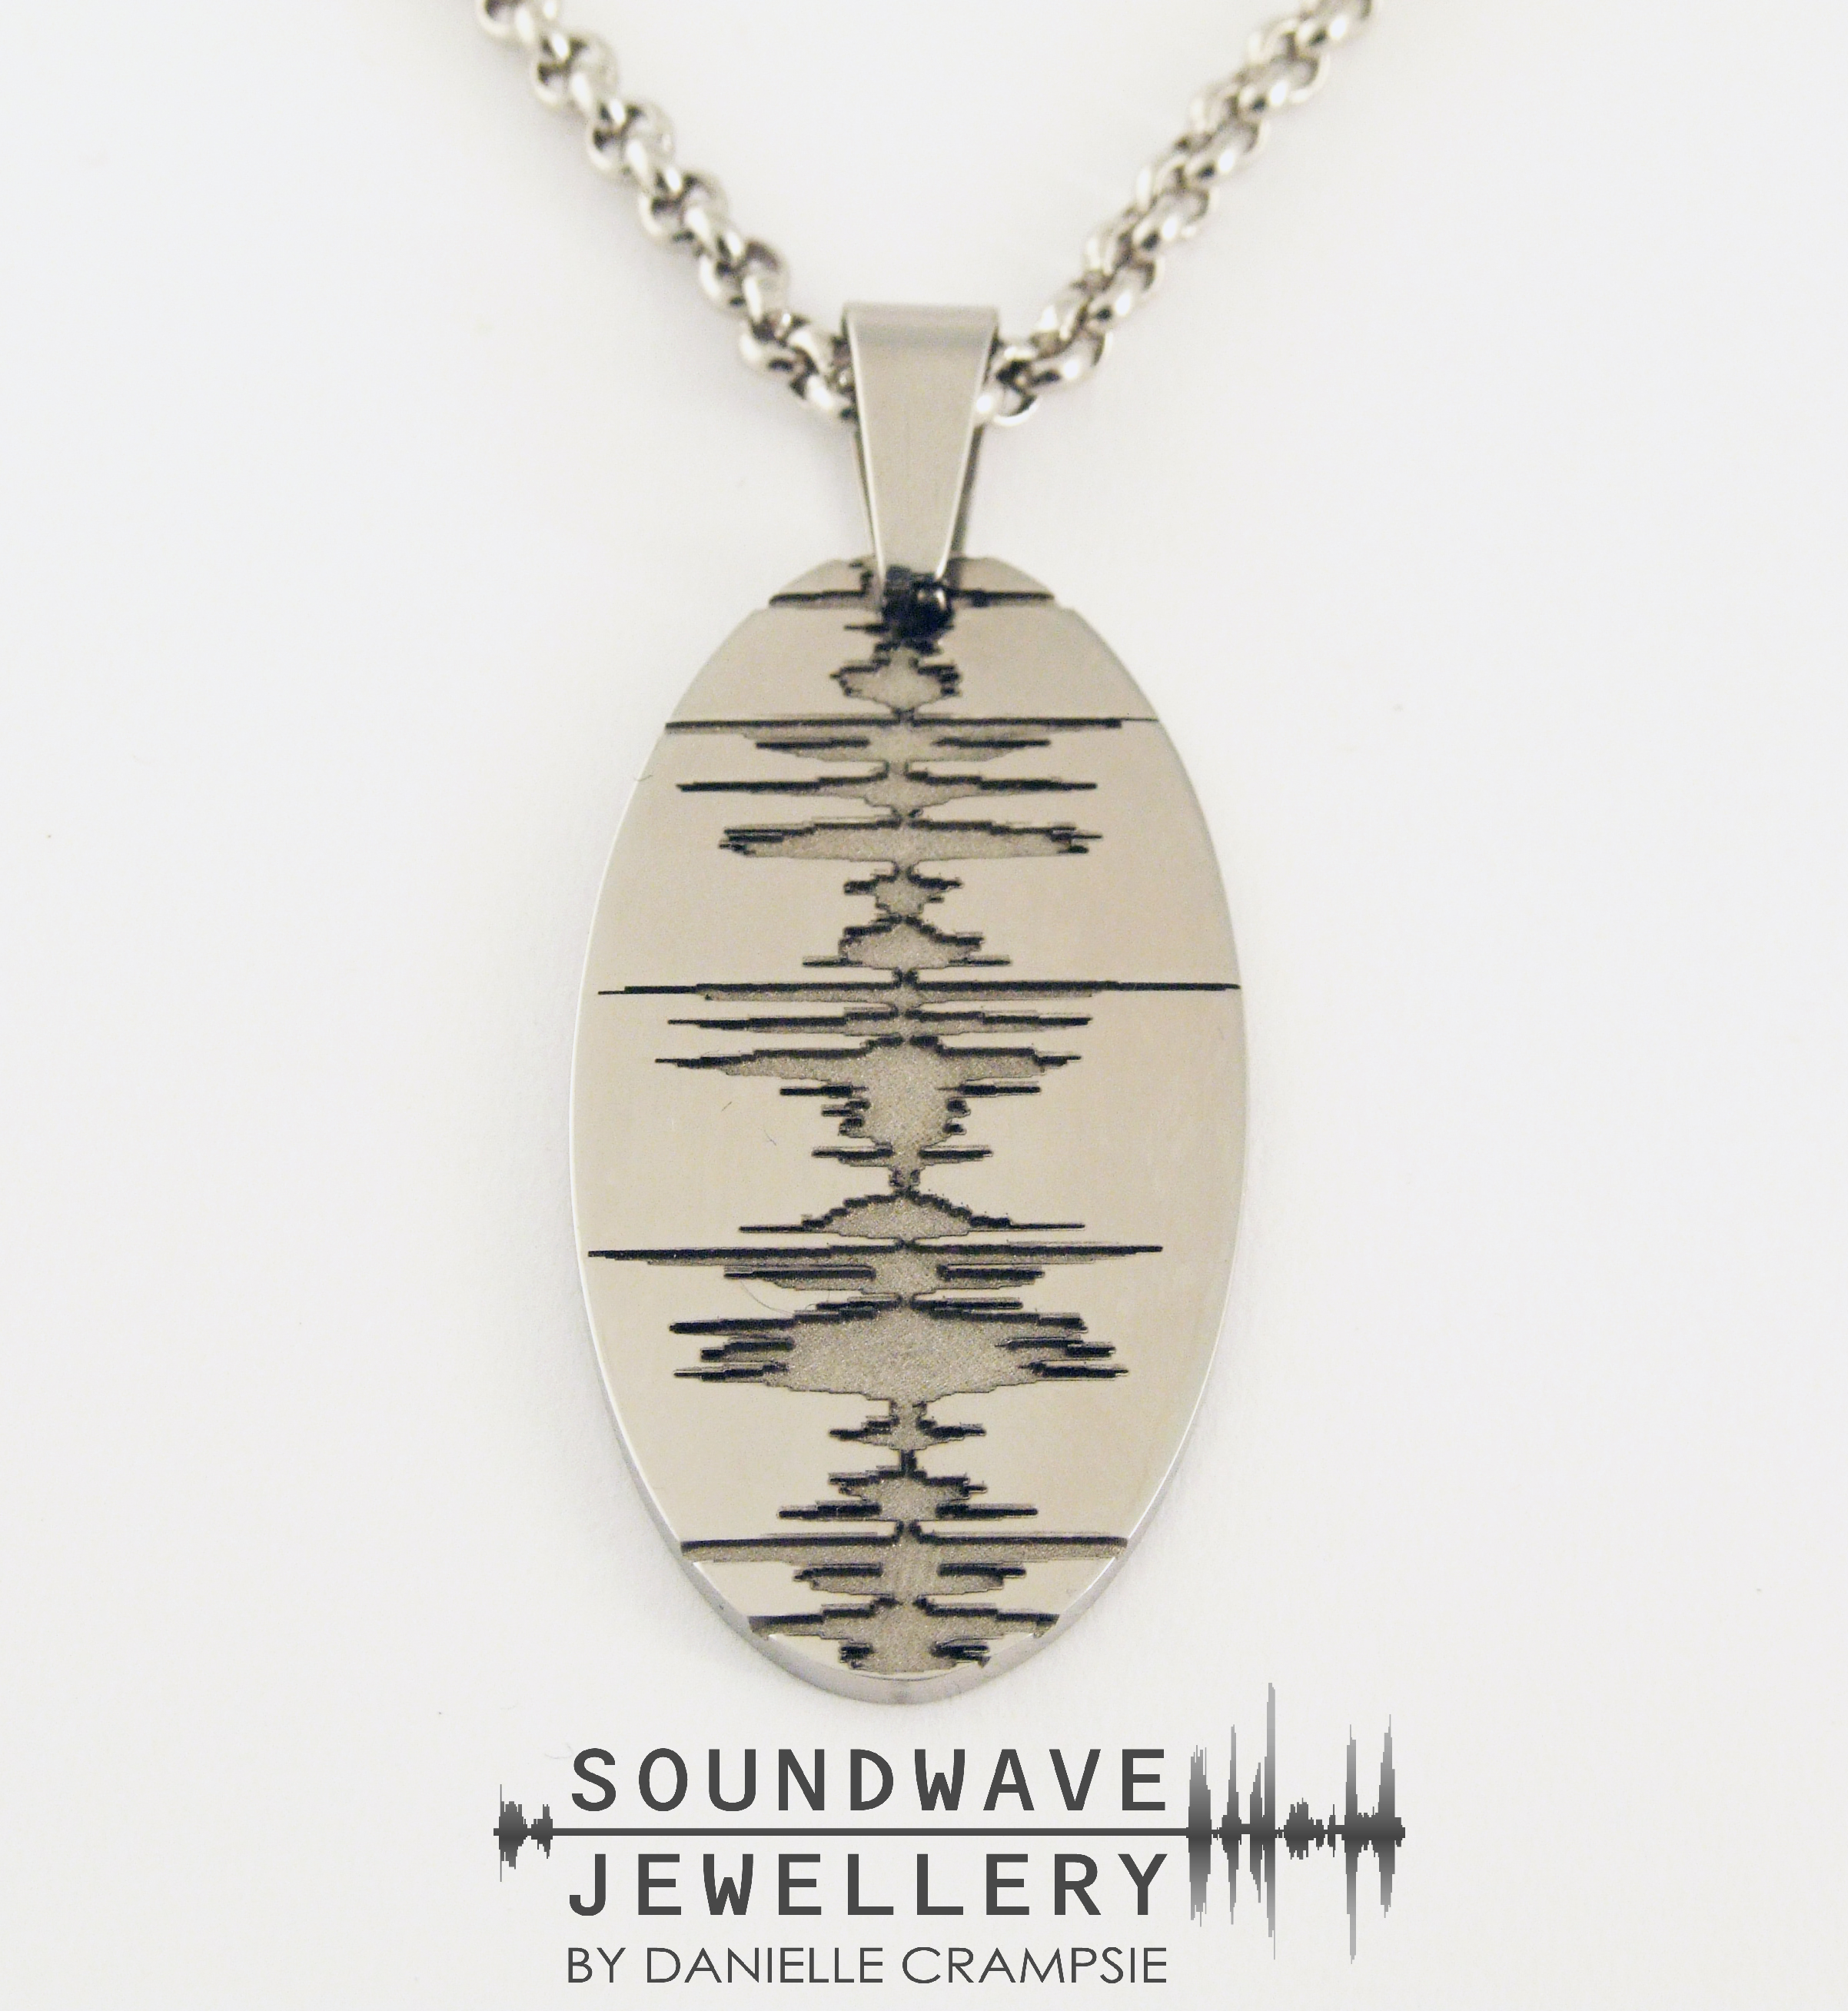 soundwave jewelry custom soundwave jewellery pendant soundwave jewellery 5353